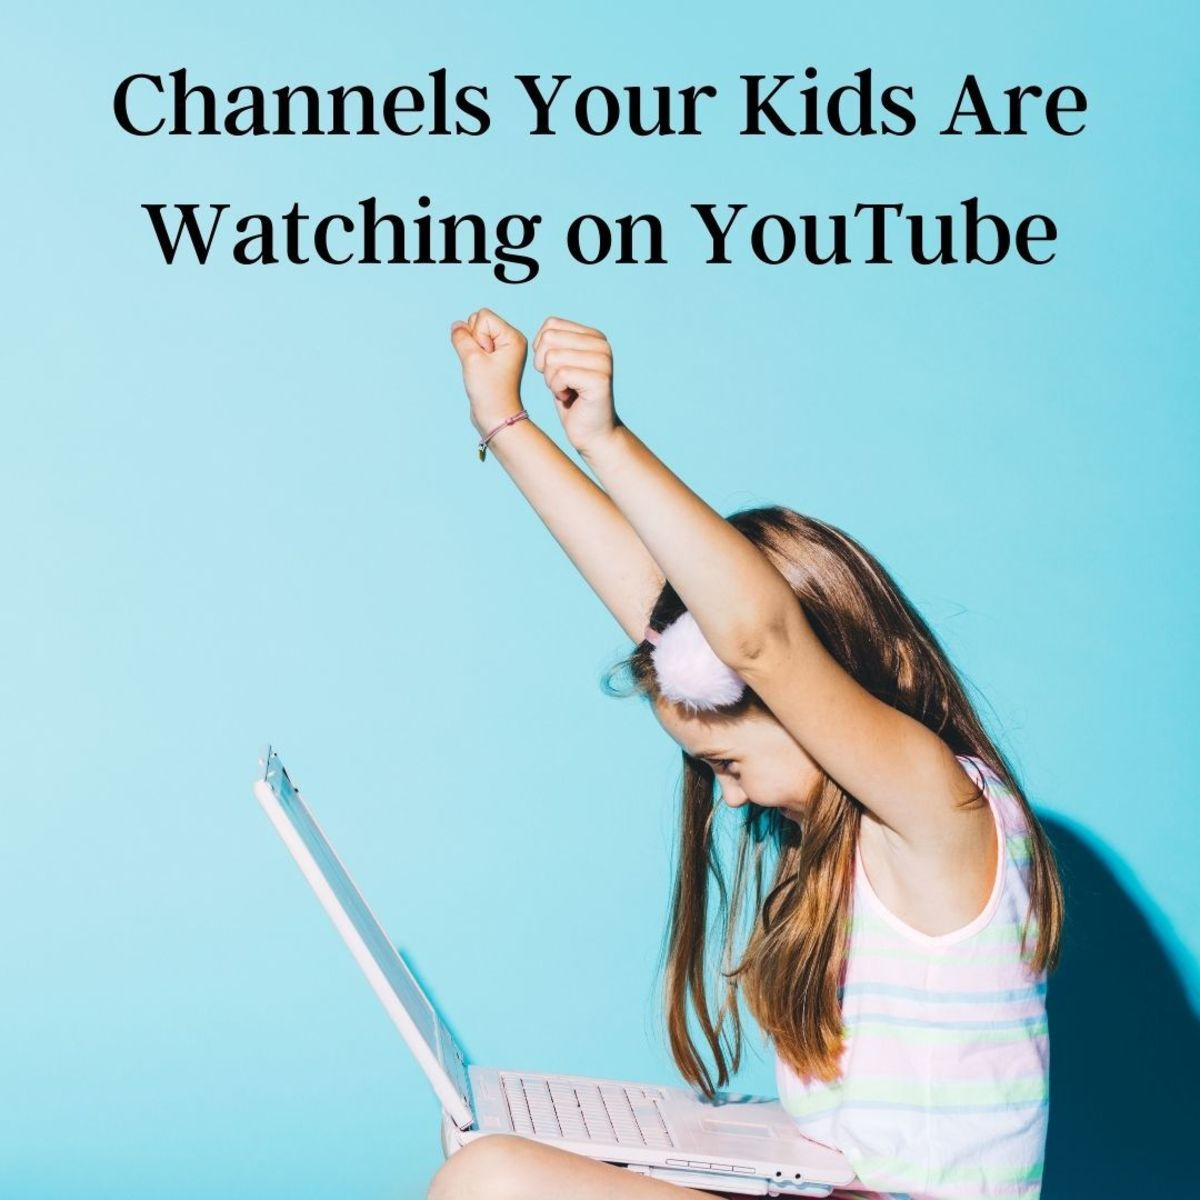 10 Channels Your Kids Are Watching on YouTube